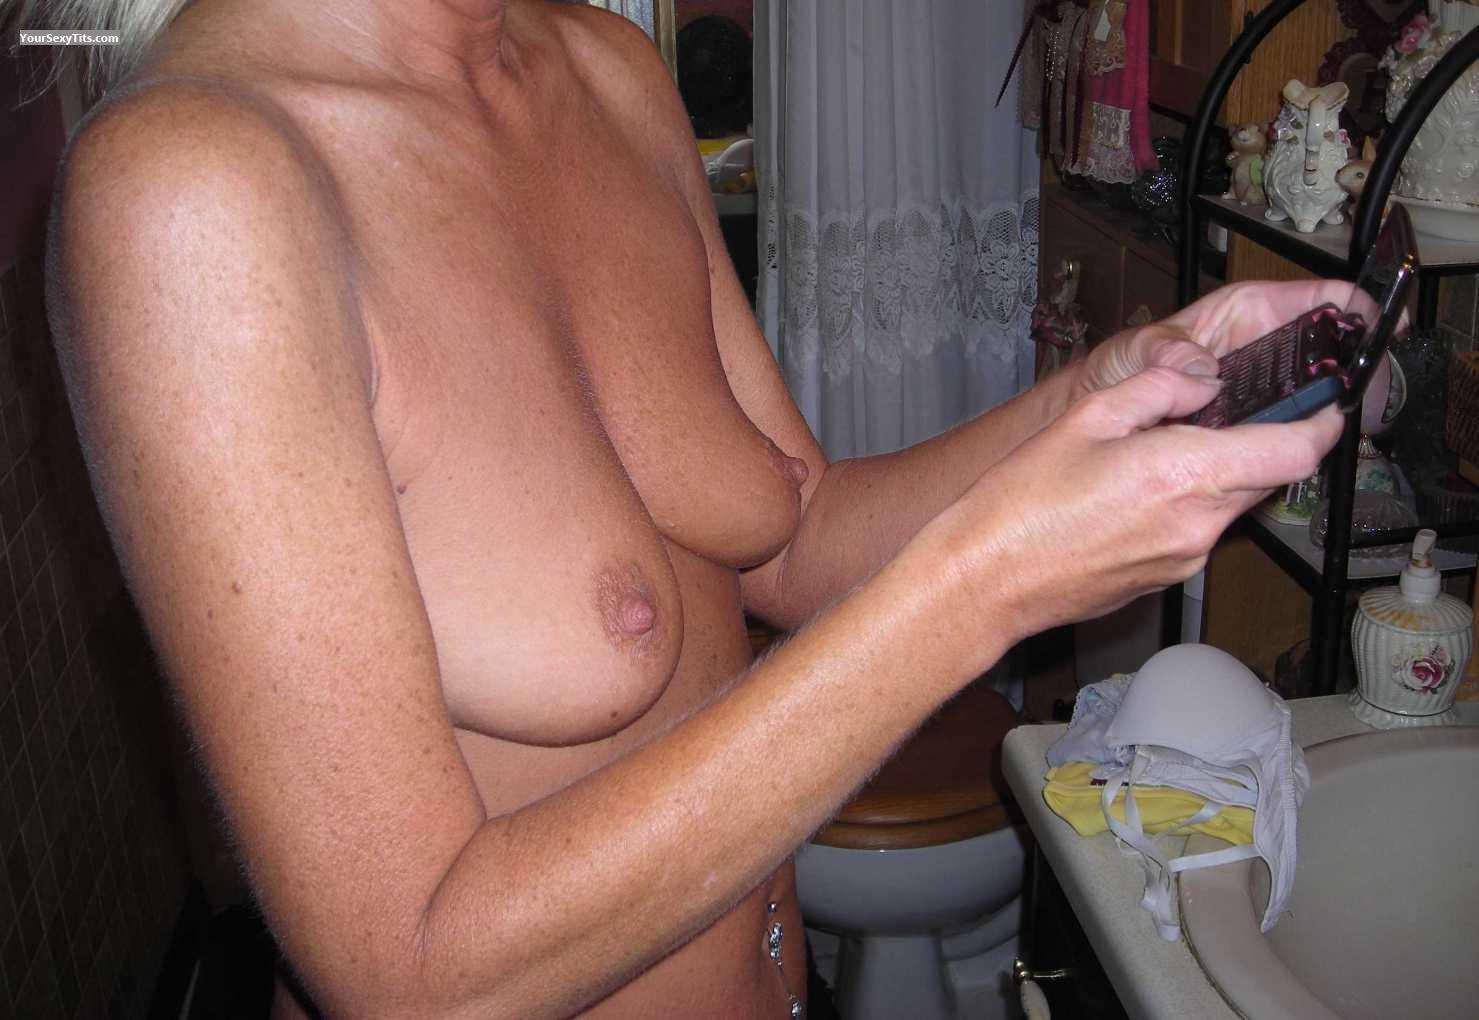 Tit Flash: Small Tits - Texting from United States